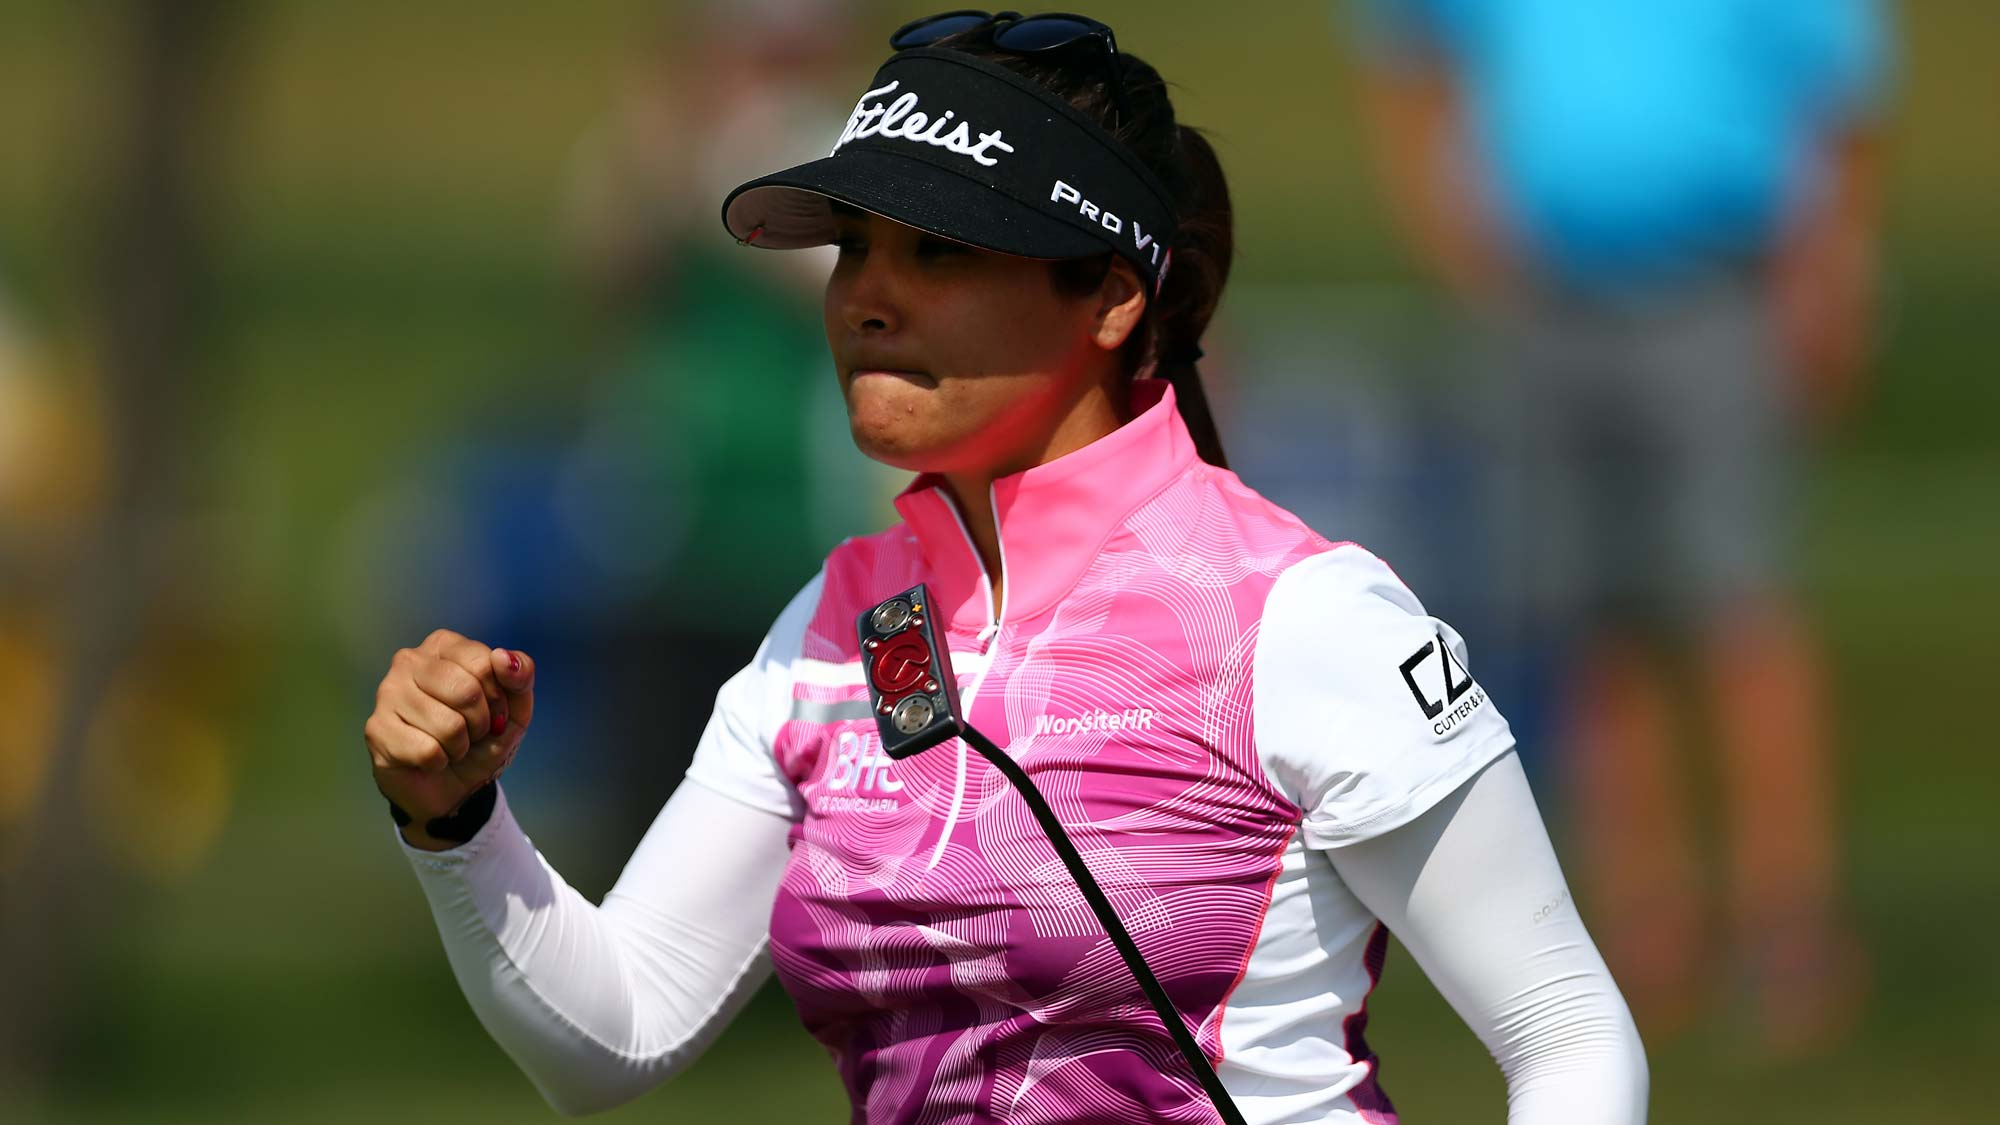 Mariajo Uribe of Colombia reacts after sinking a long put on the ninth green during the first round of the CP Womens Open